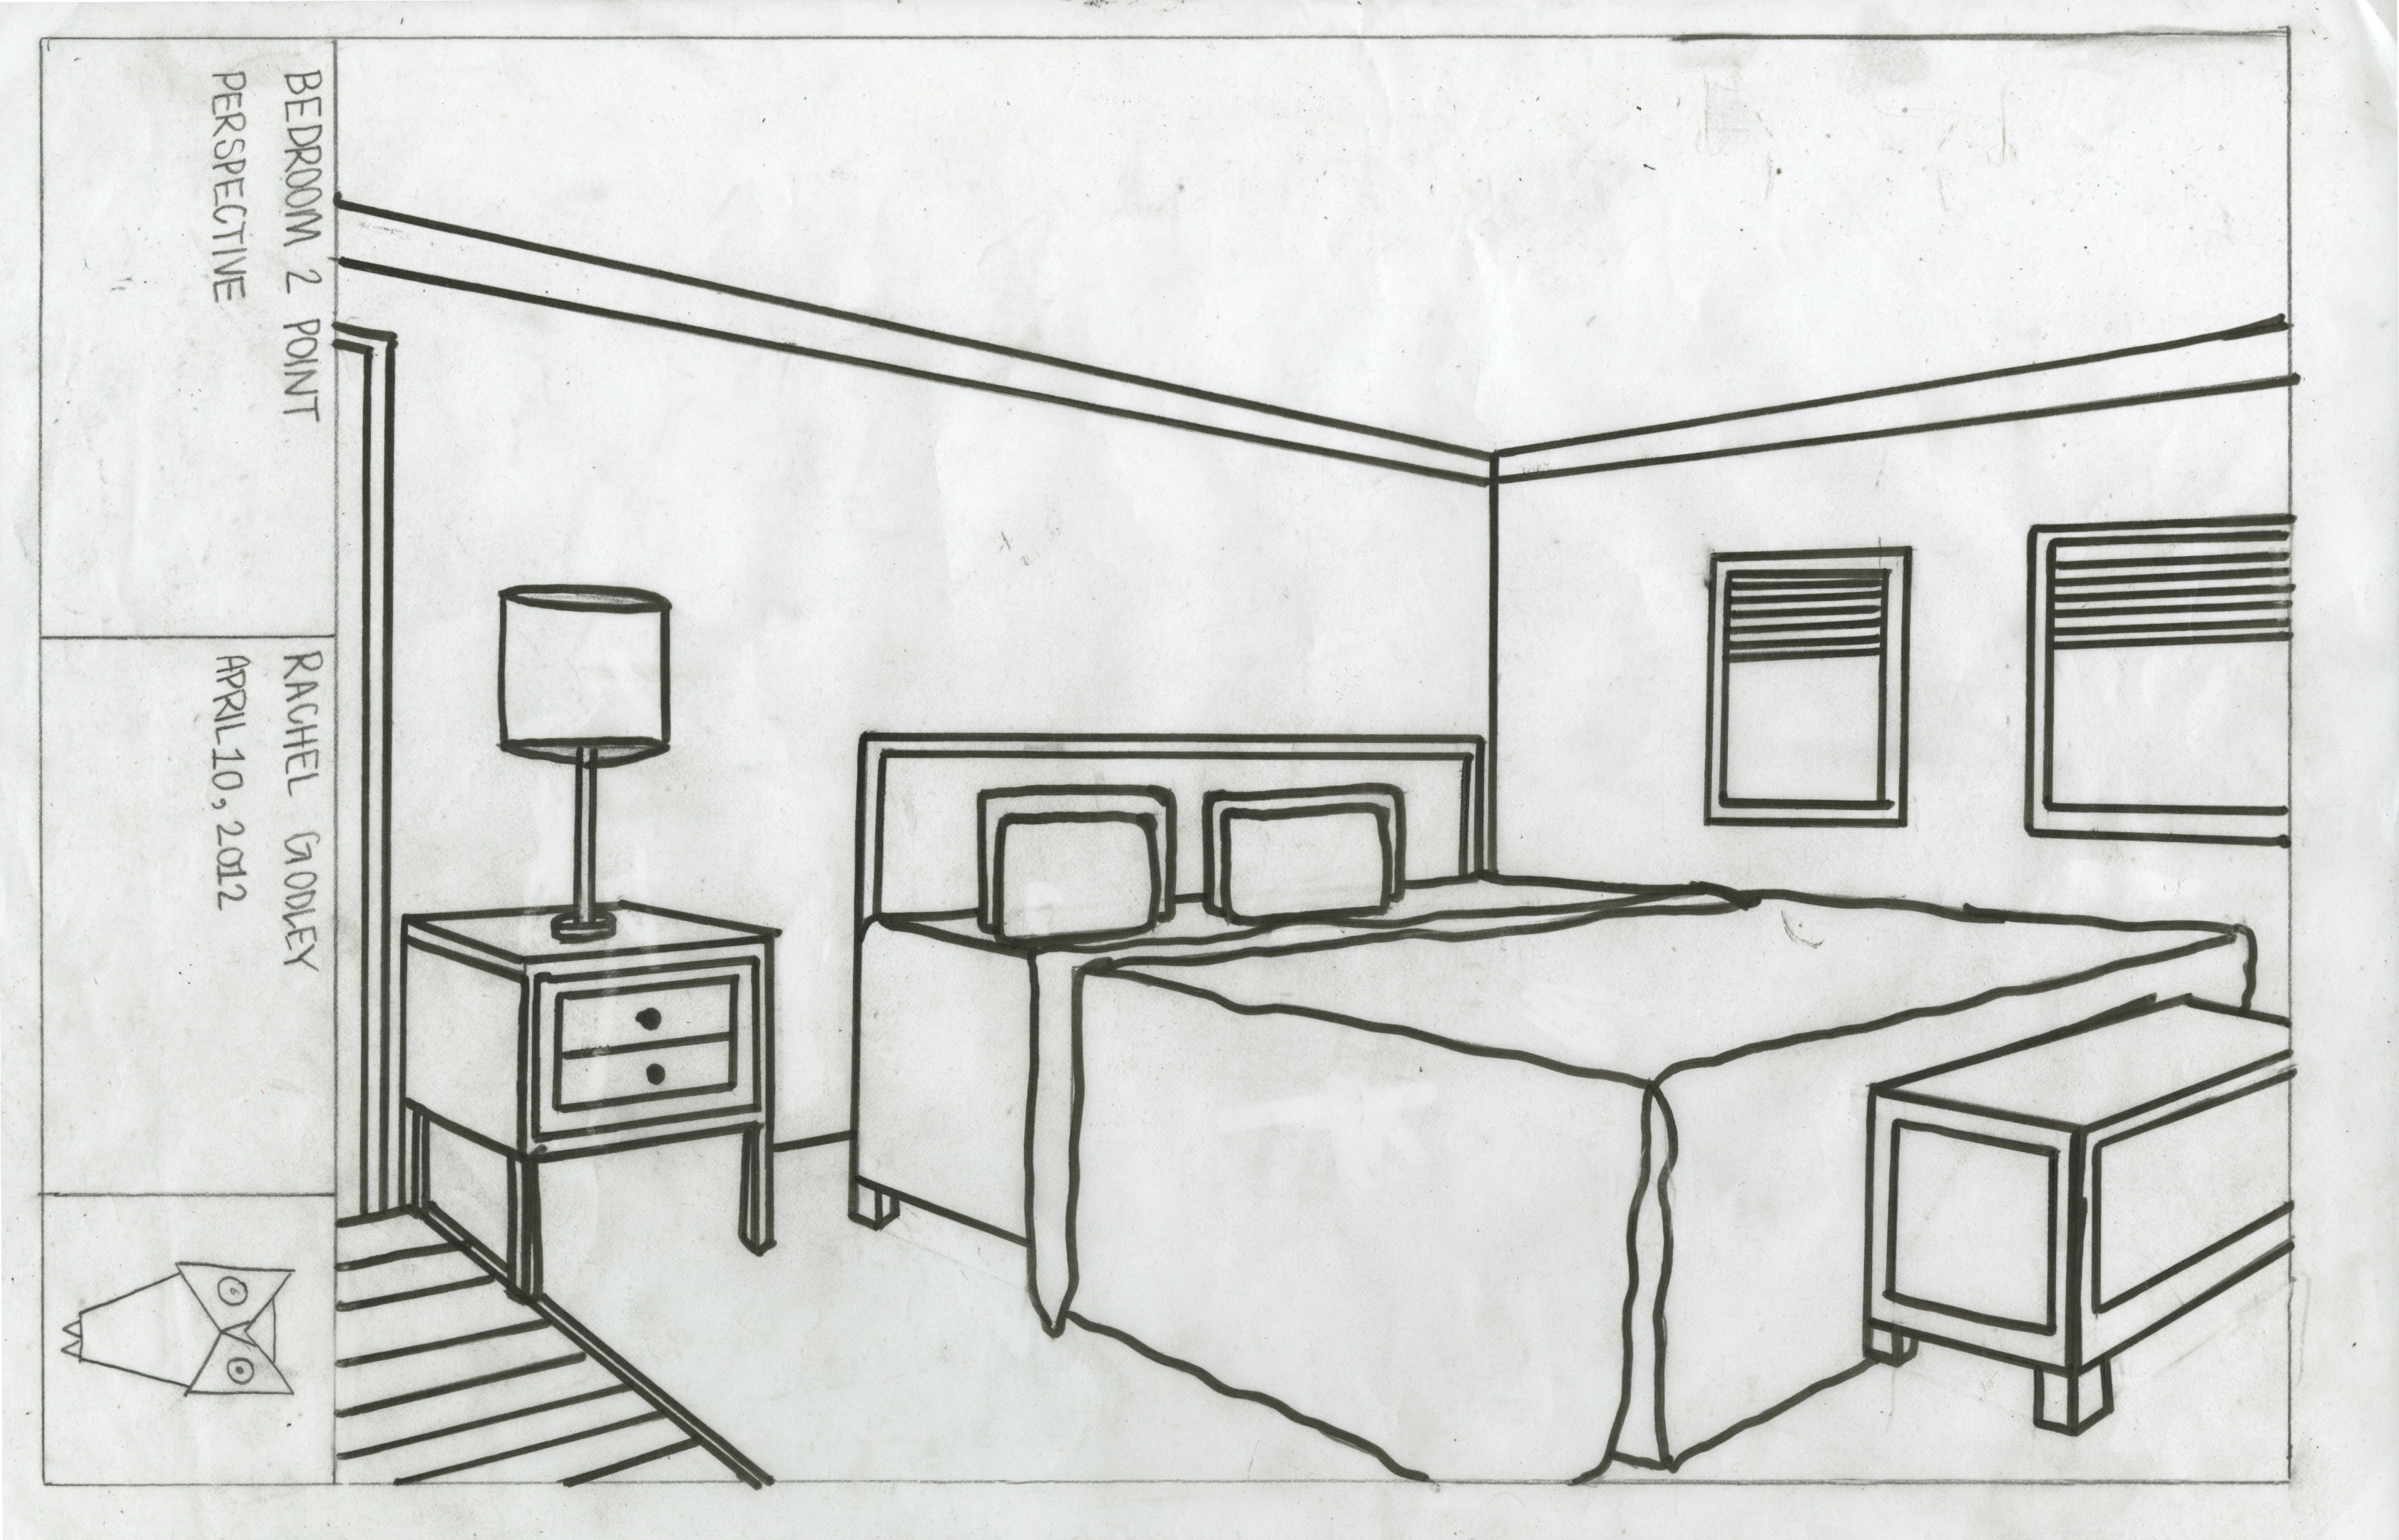 Drawn bedroom basic interior design Of Gifts Bedroom Drawing draw